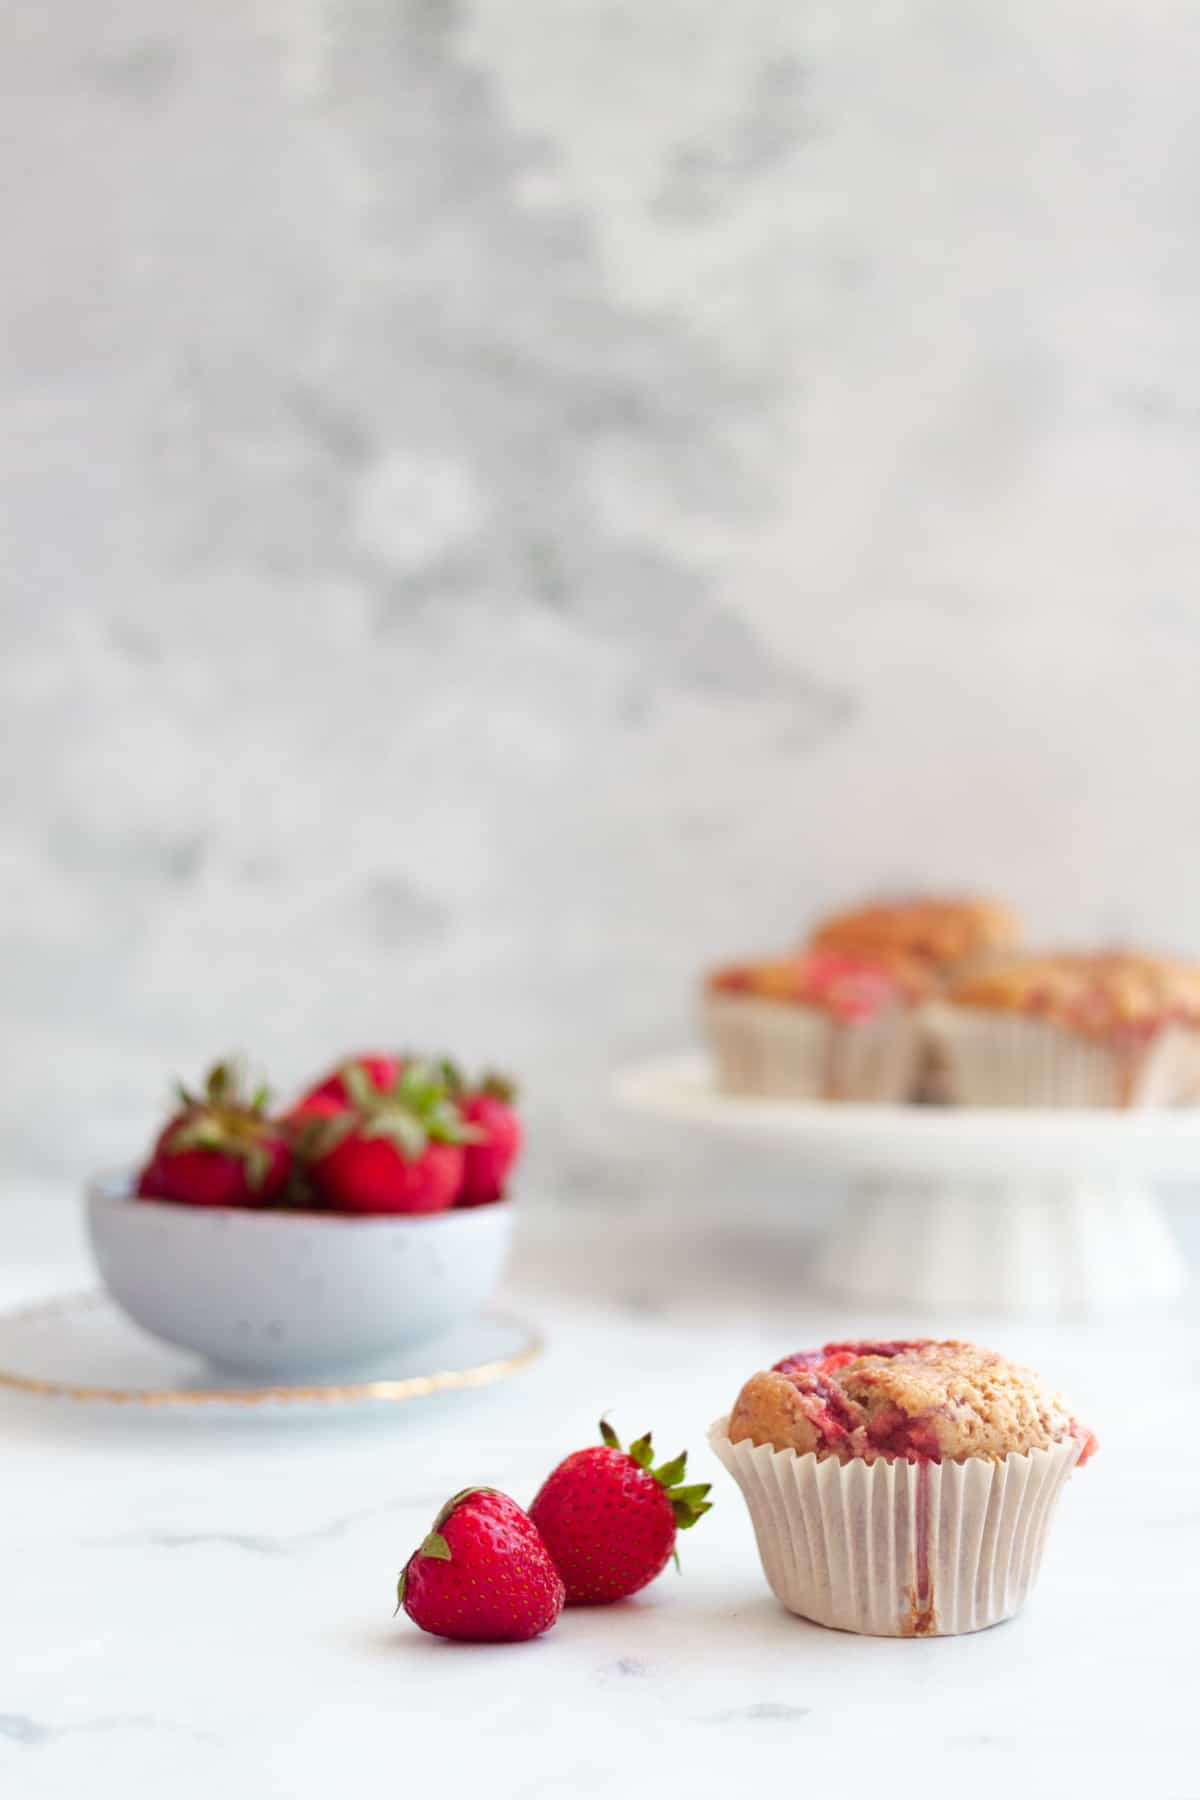 one strawberry muffin next to 2 fresh strawberries and more strawberries in  a bowl in the background.